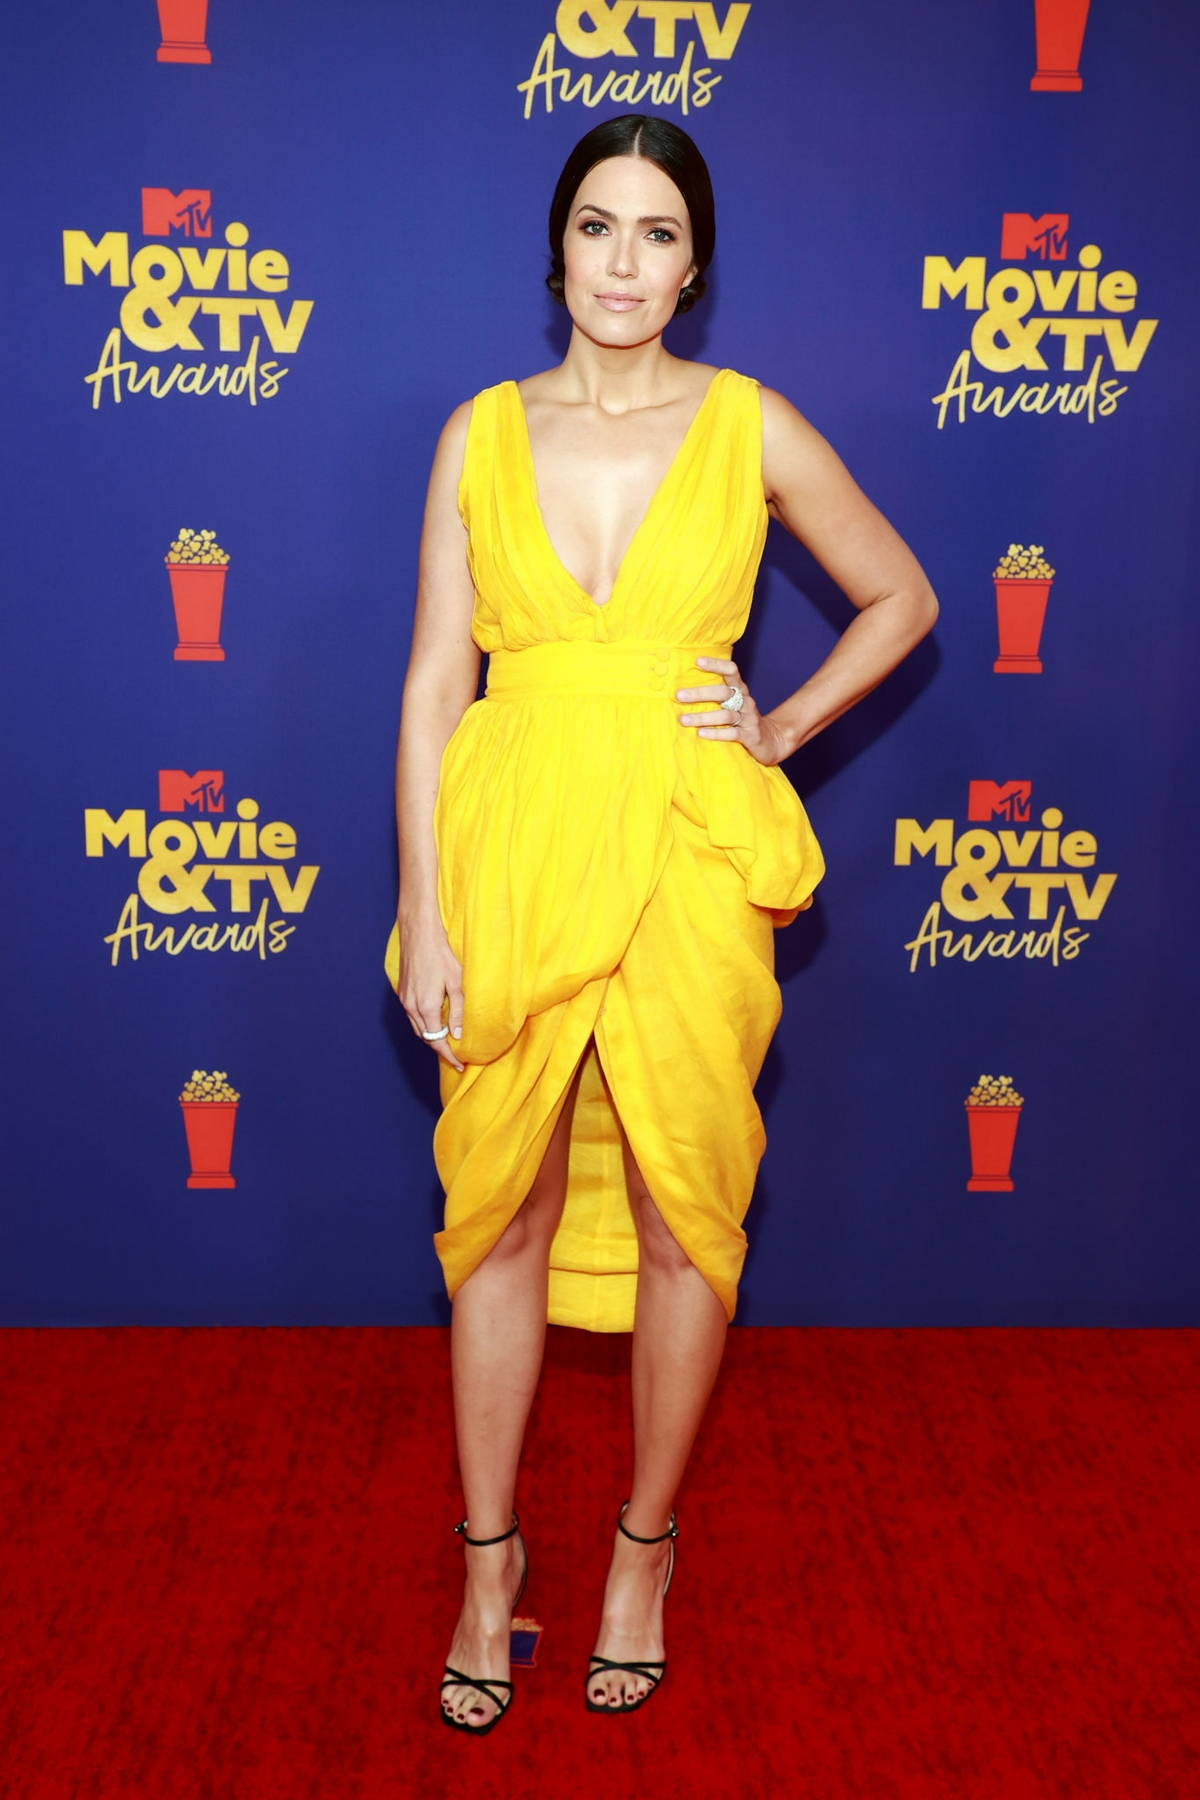 Mandy Moore attends the 2021 MTV Movie & TV Awards at the Hollywood Palladium in Los Angeles